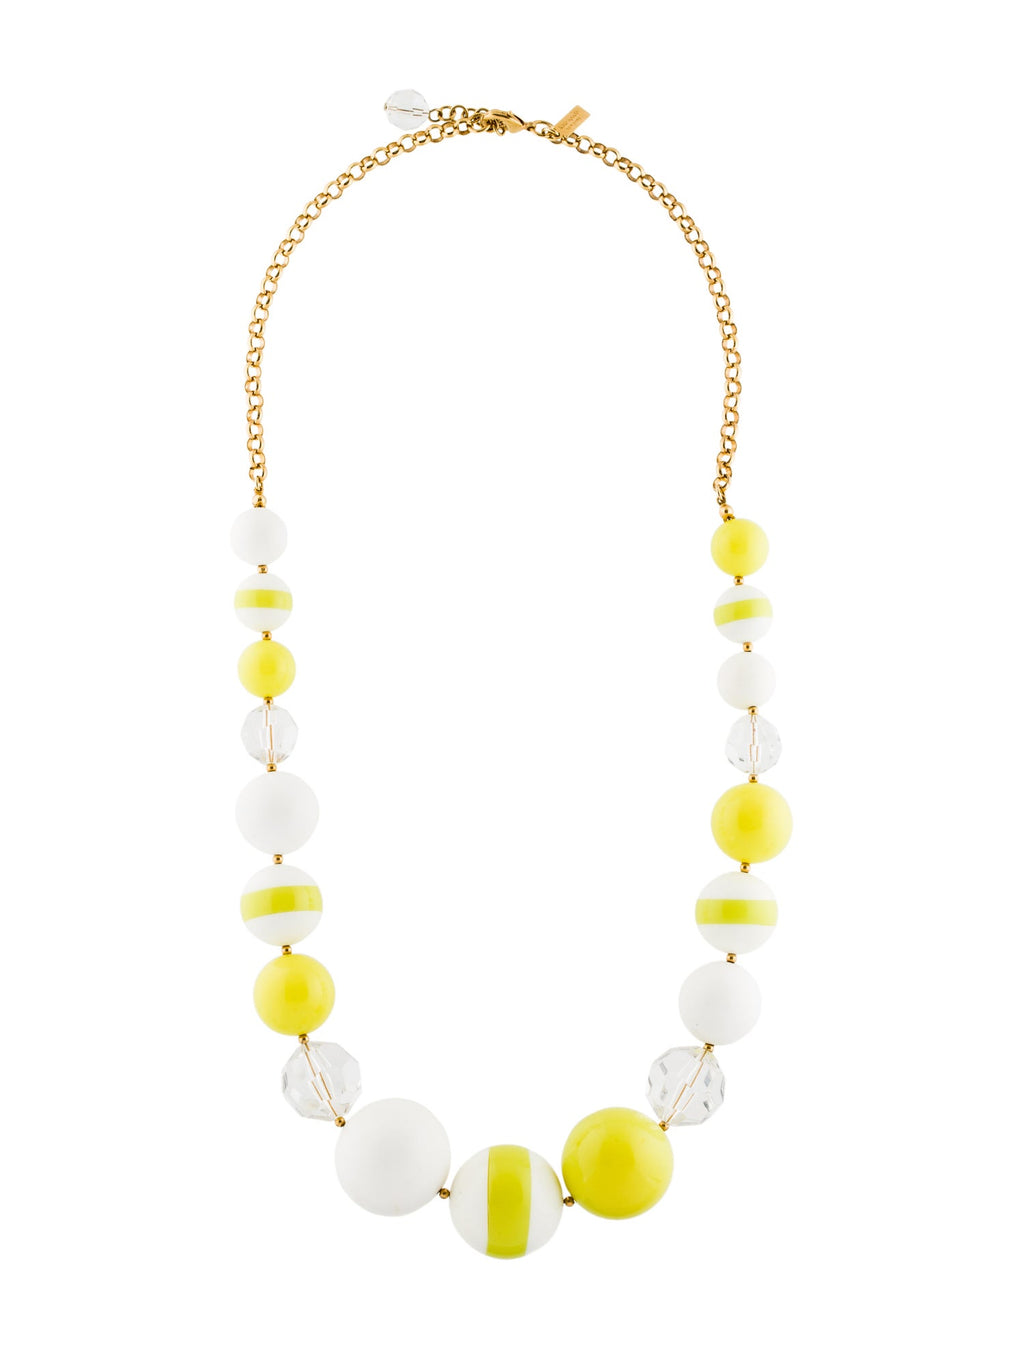 Kate Spade New York Yellow Bead Statement Necklace